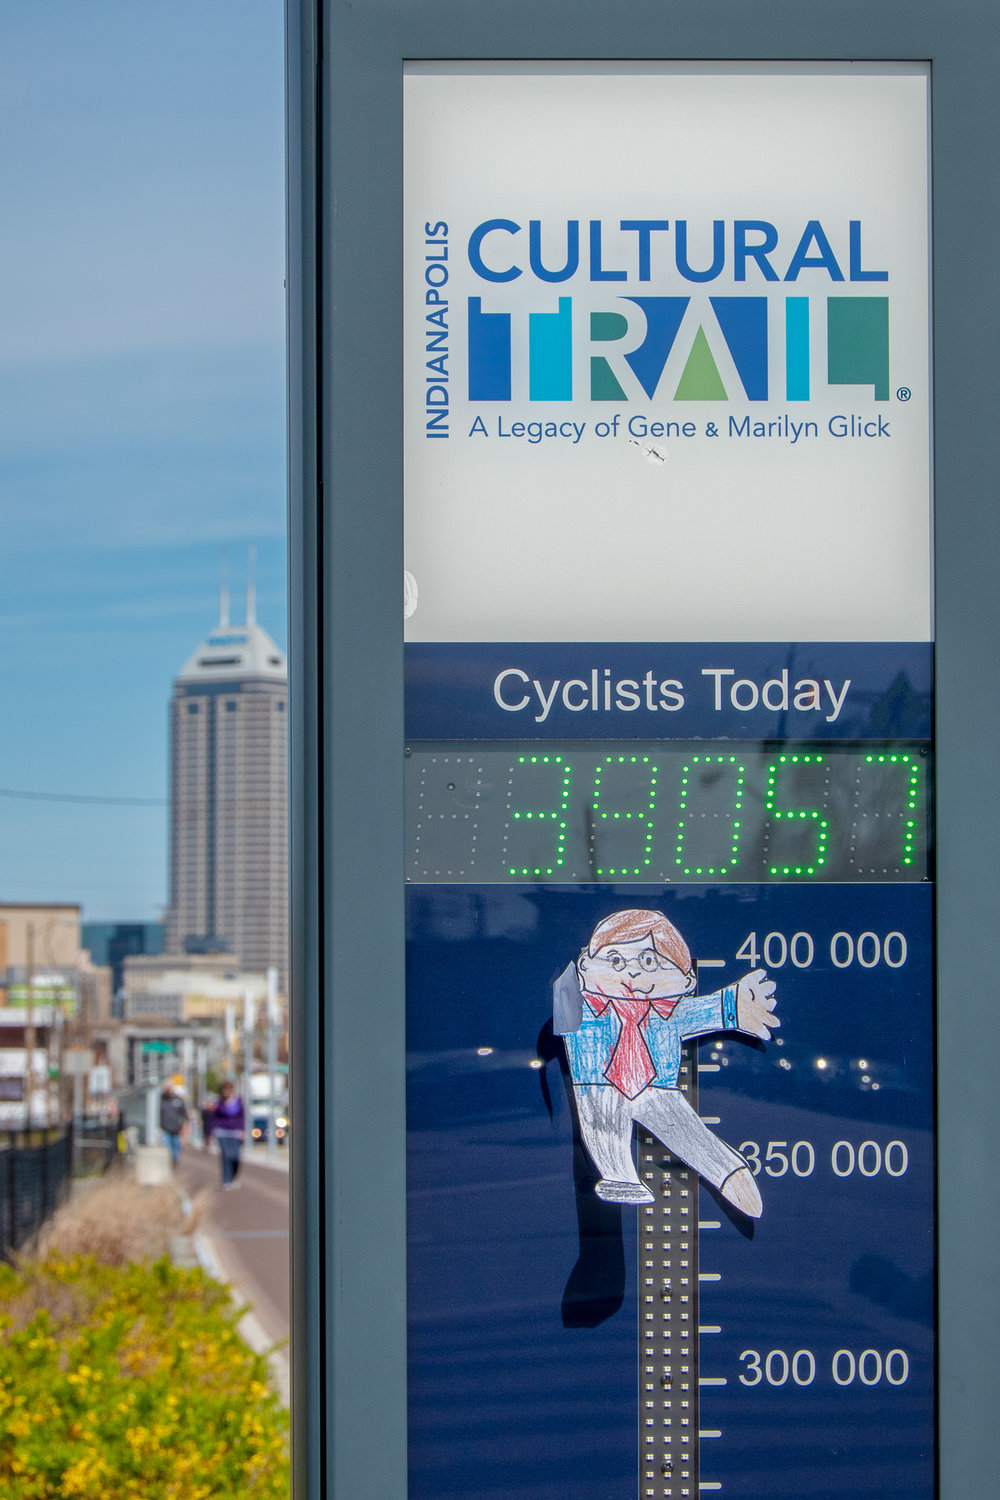 This is one of the bicycle counters on the Indy Cultural Trail. We think the device was on the fritz because it usually shows a daily count of cyclists. Or, perhaps it was a very busy day!